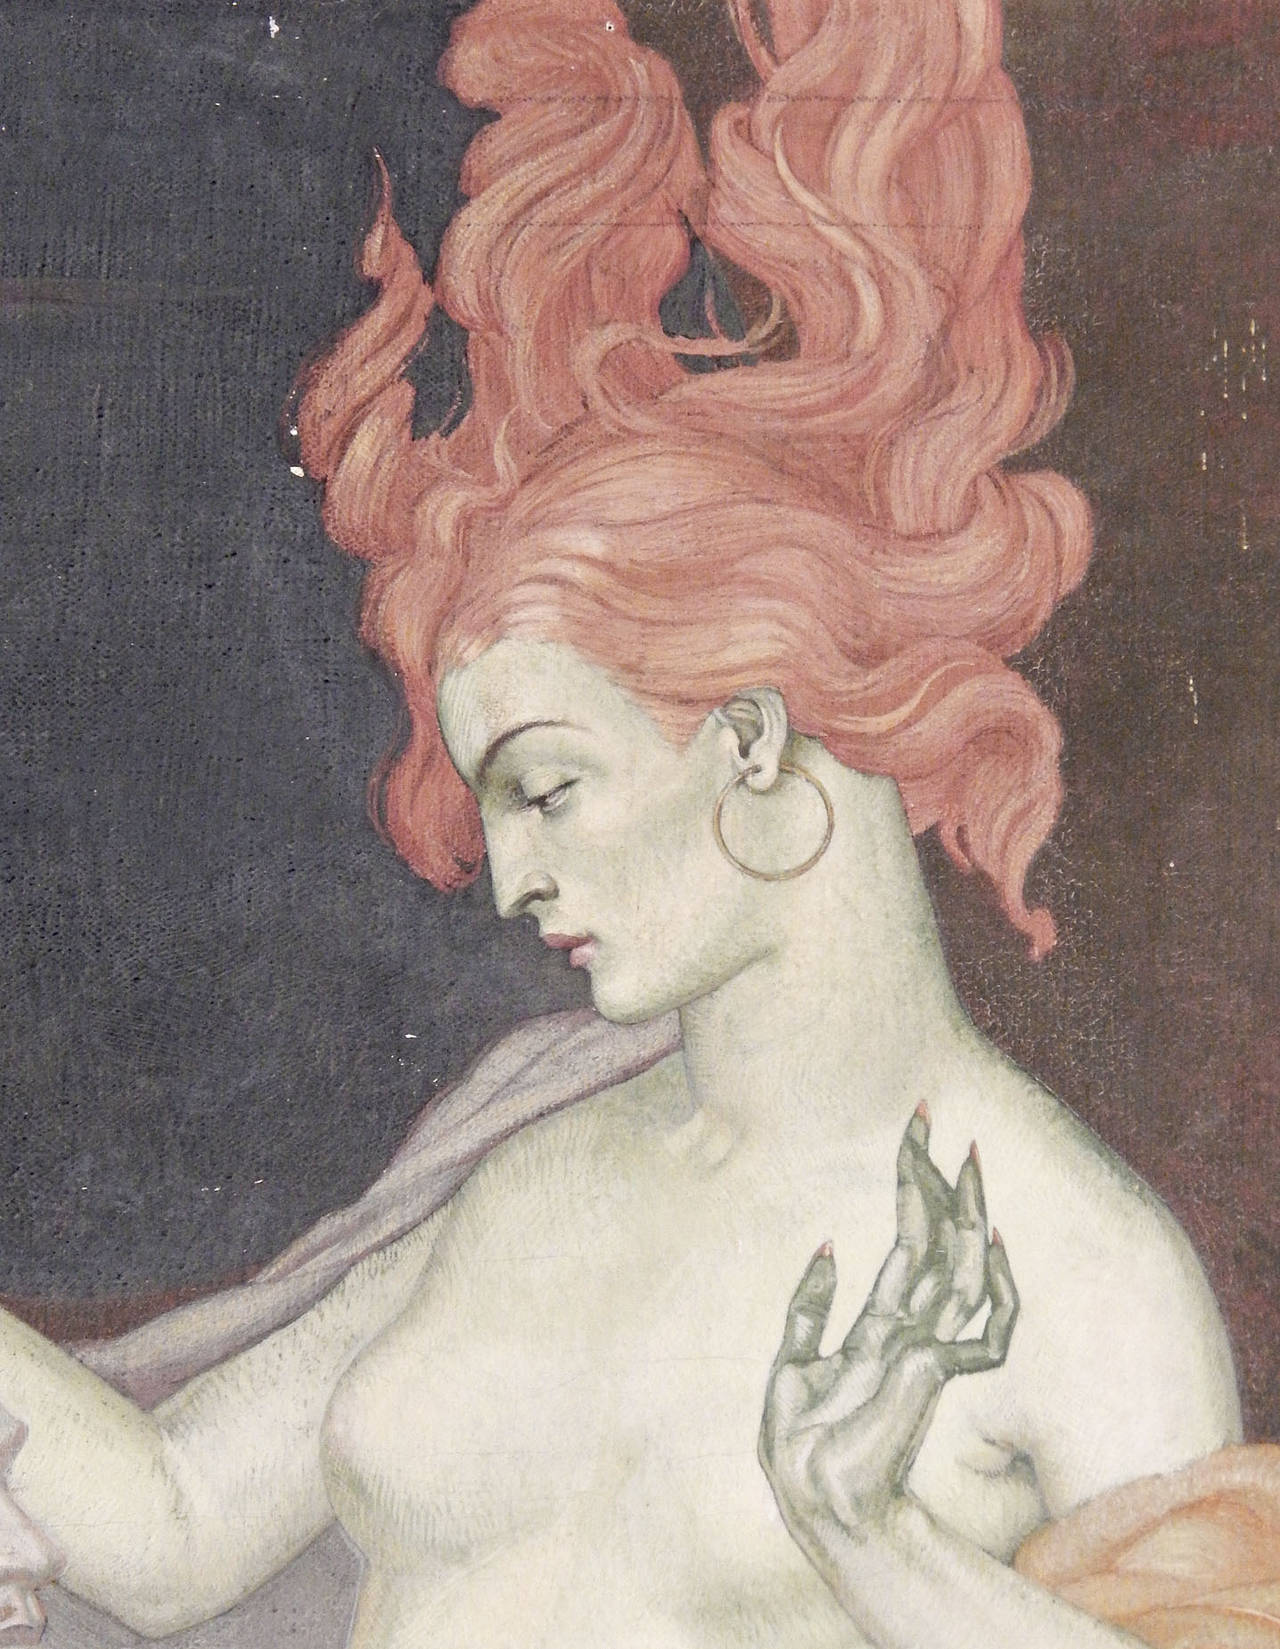 Depicting a Salome who is both ravishing and terrifying, with her auburn tresses rising up as if on fire, this remarkable work was painted by Dunbar Beck, famed for his WPA and New York World's Fair murals. Here Beck captures the female nude in all